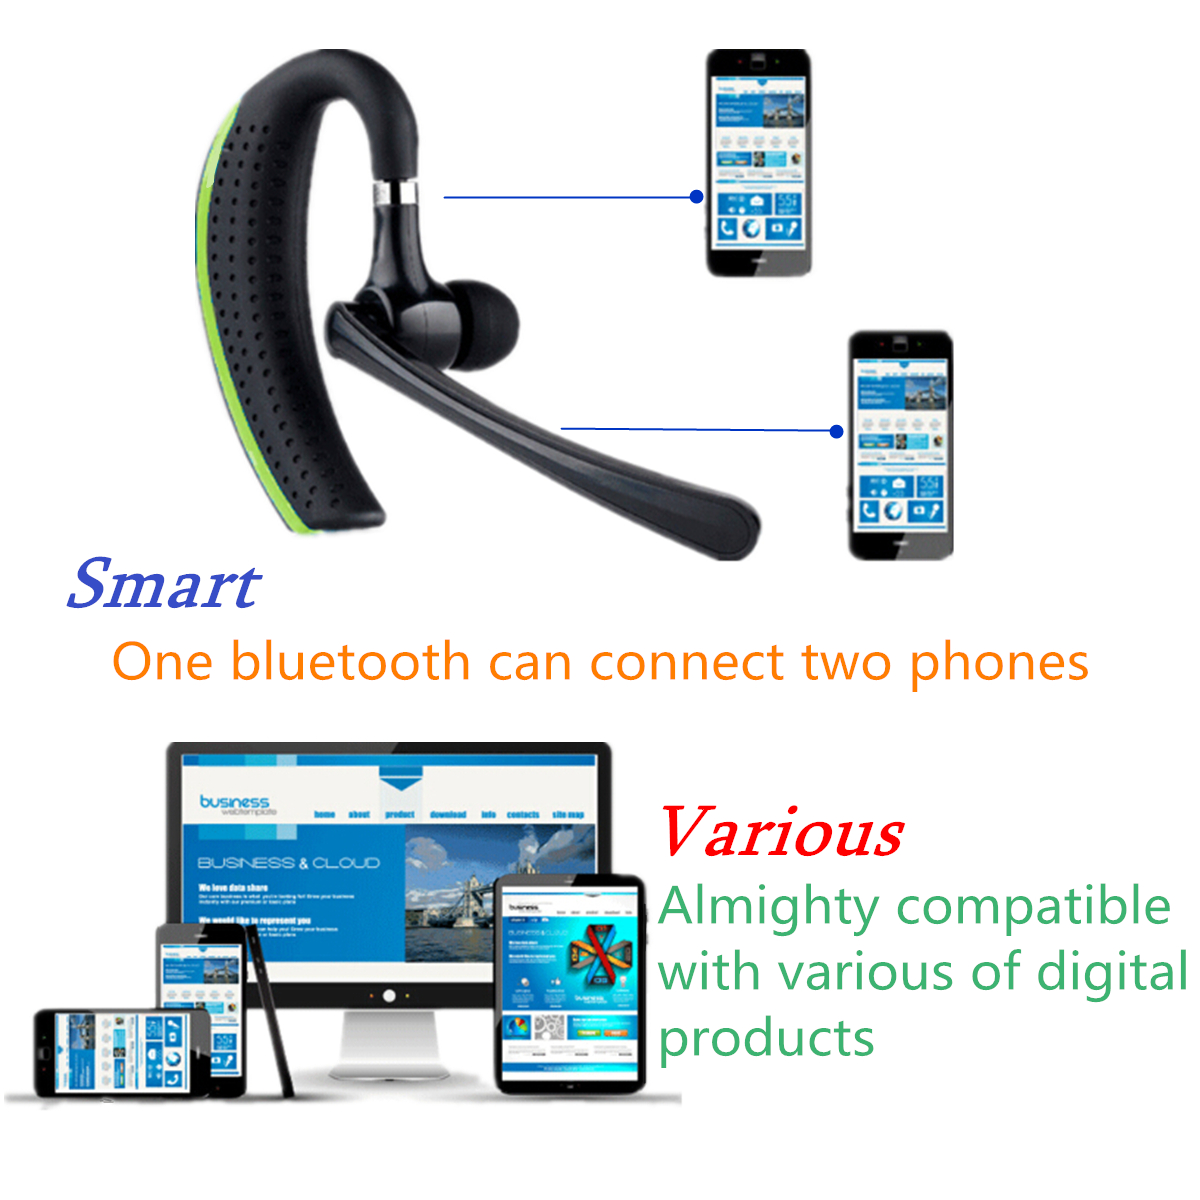 ... Bluetooth Headsets › Wireless mobet william hill kostenlos williamhill Sports Bluetooth Headset V2.0 (Suits